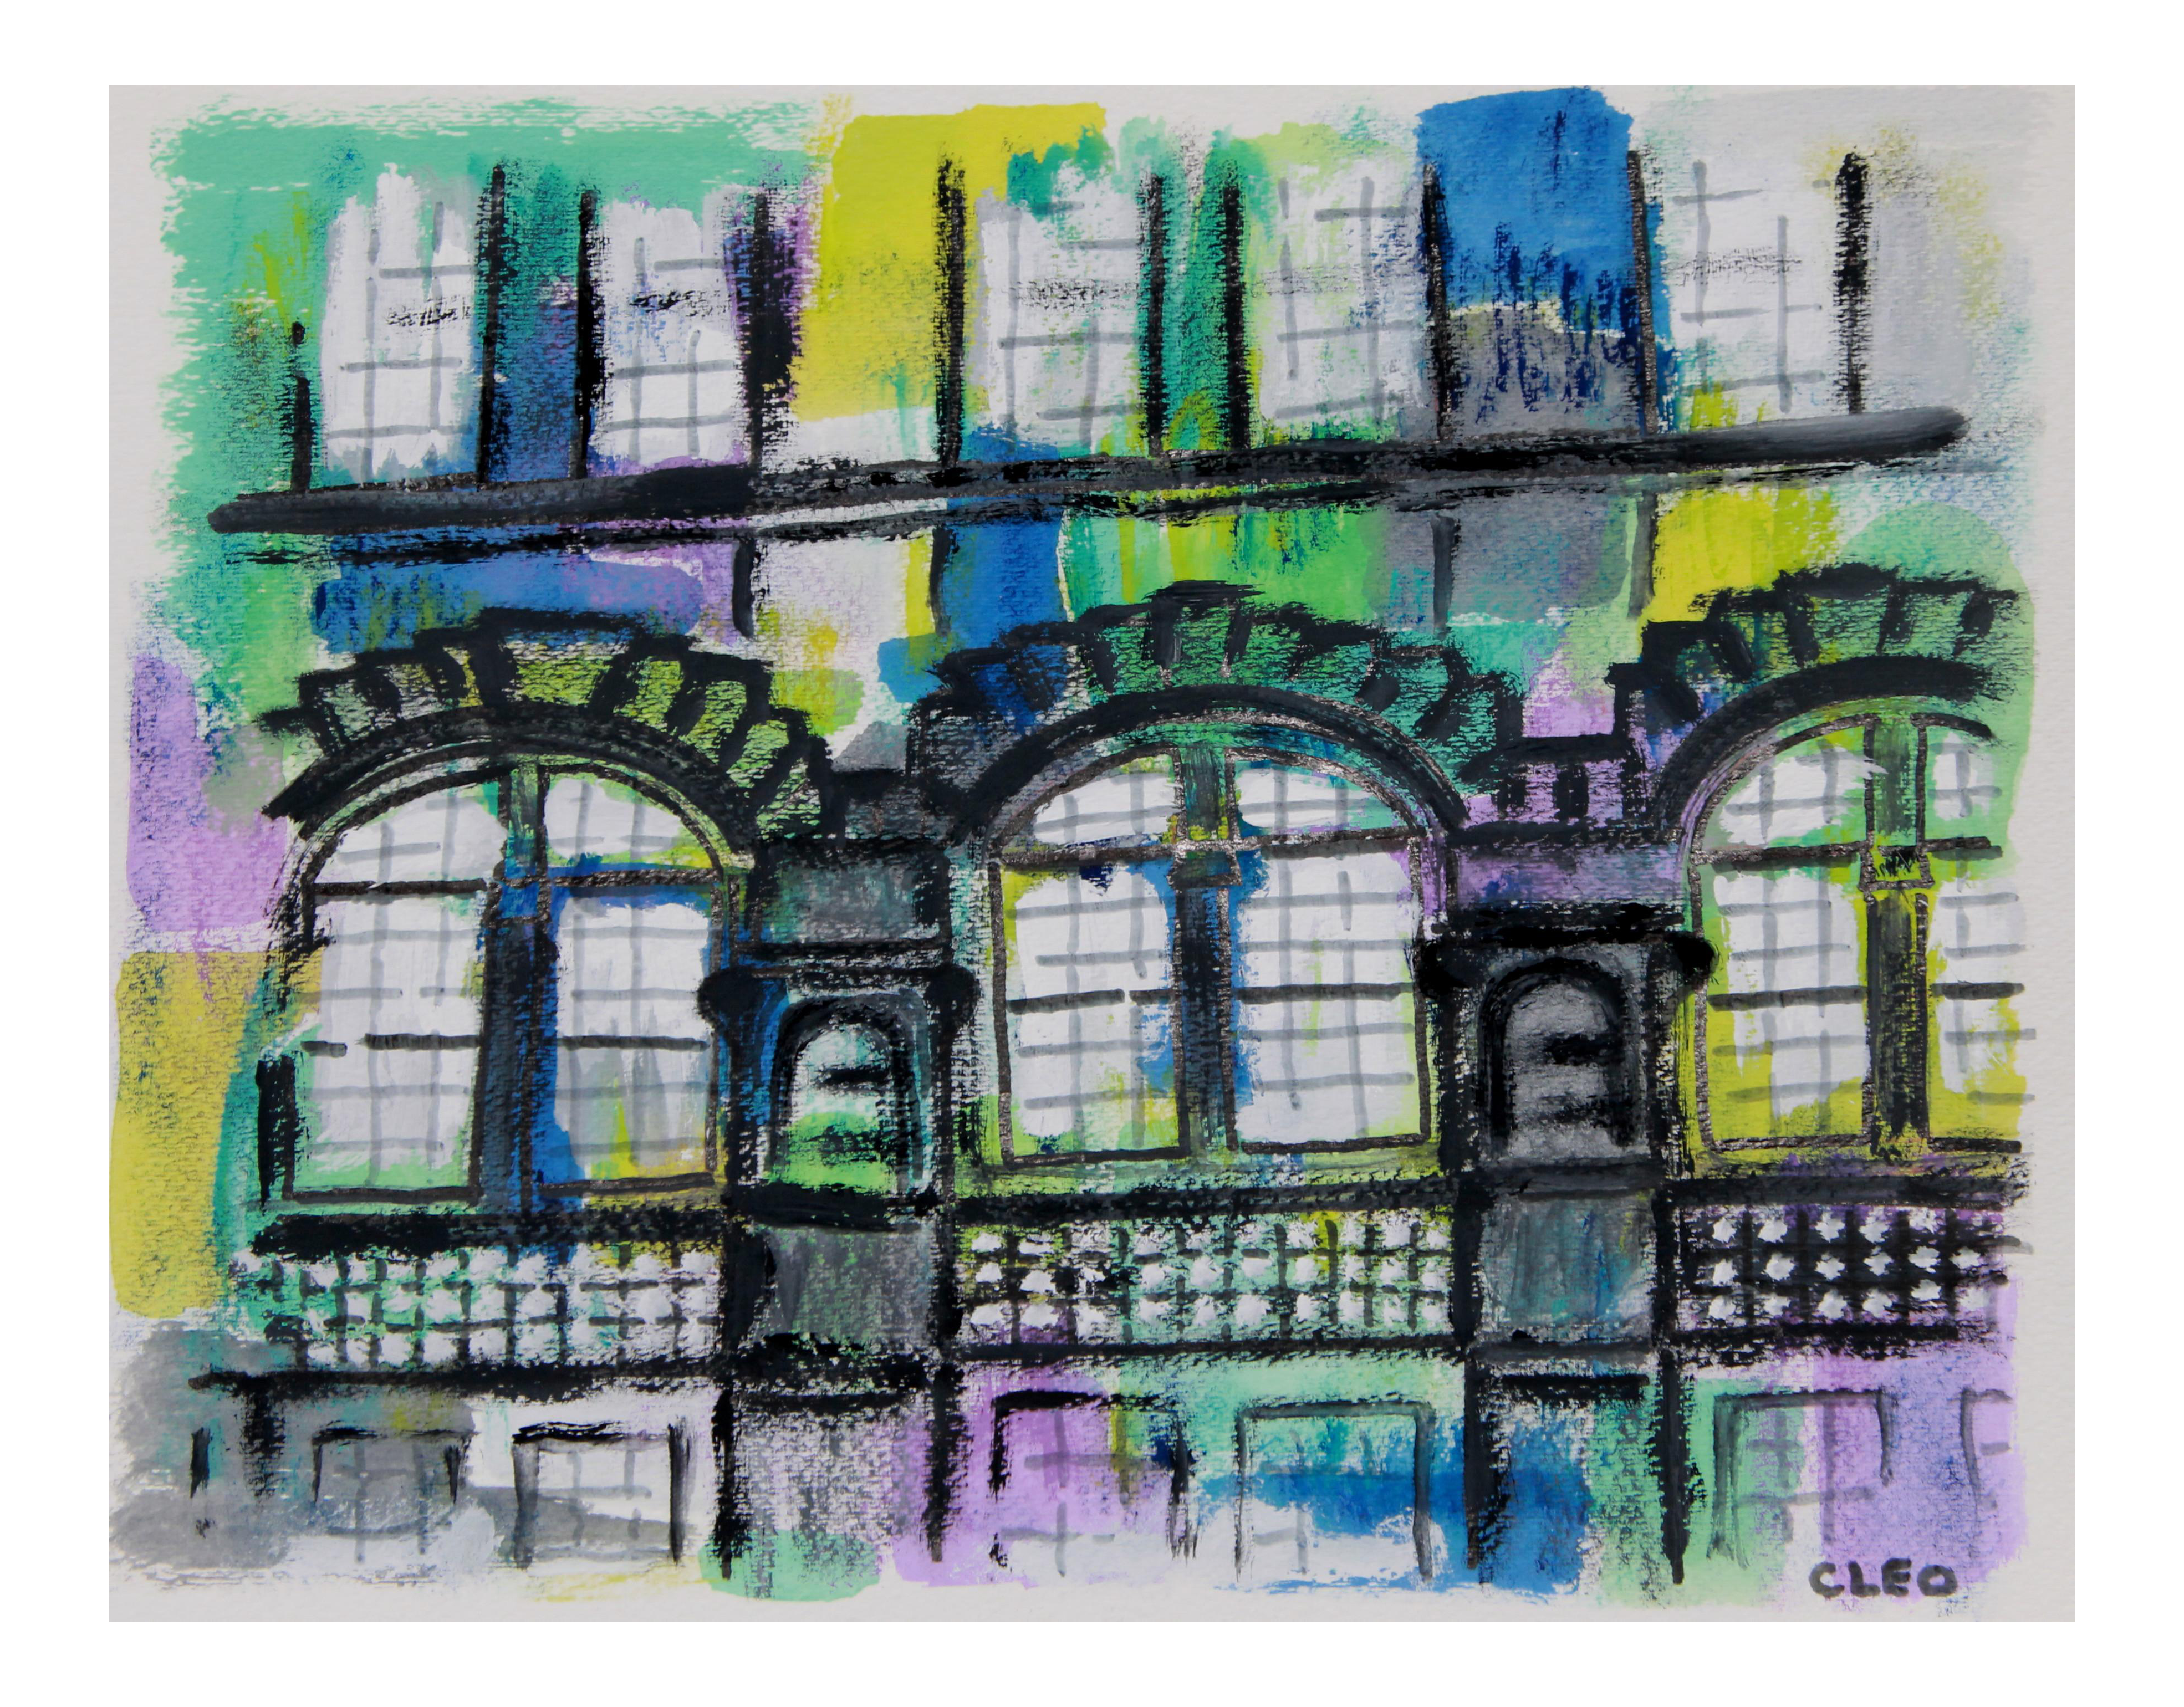 Cities drawing abstract. Brownstone building new york